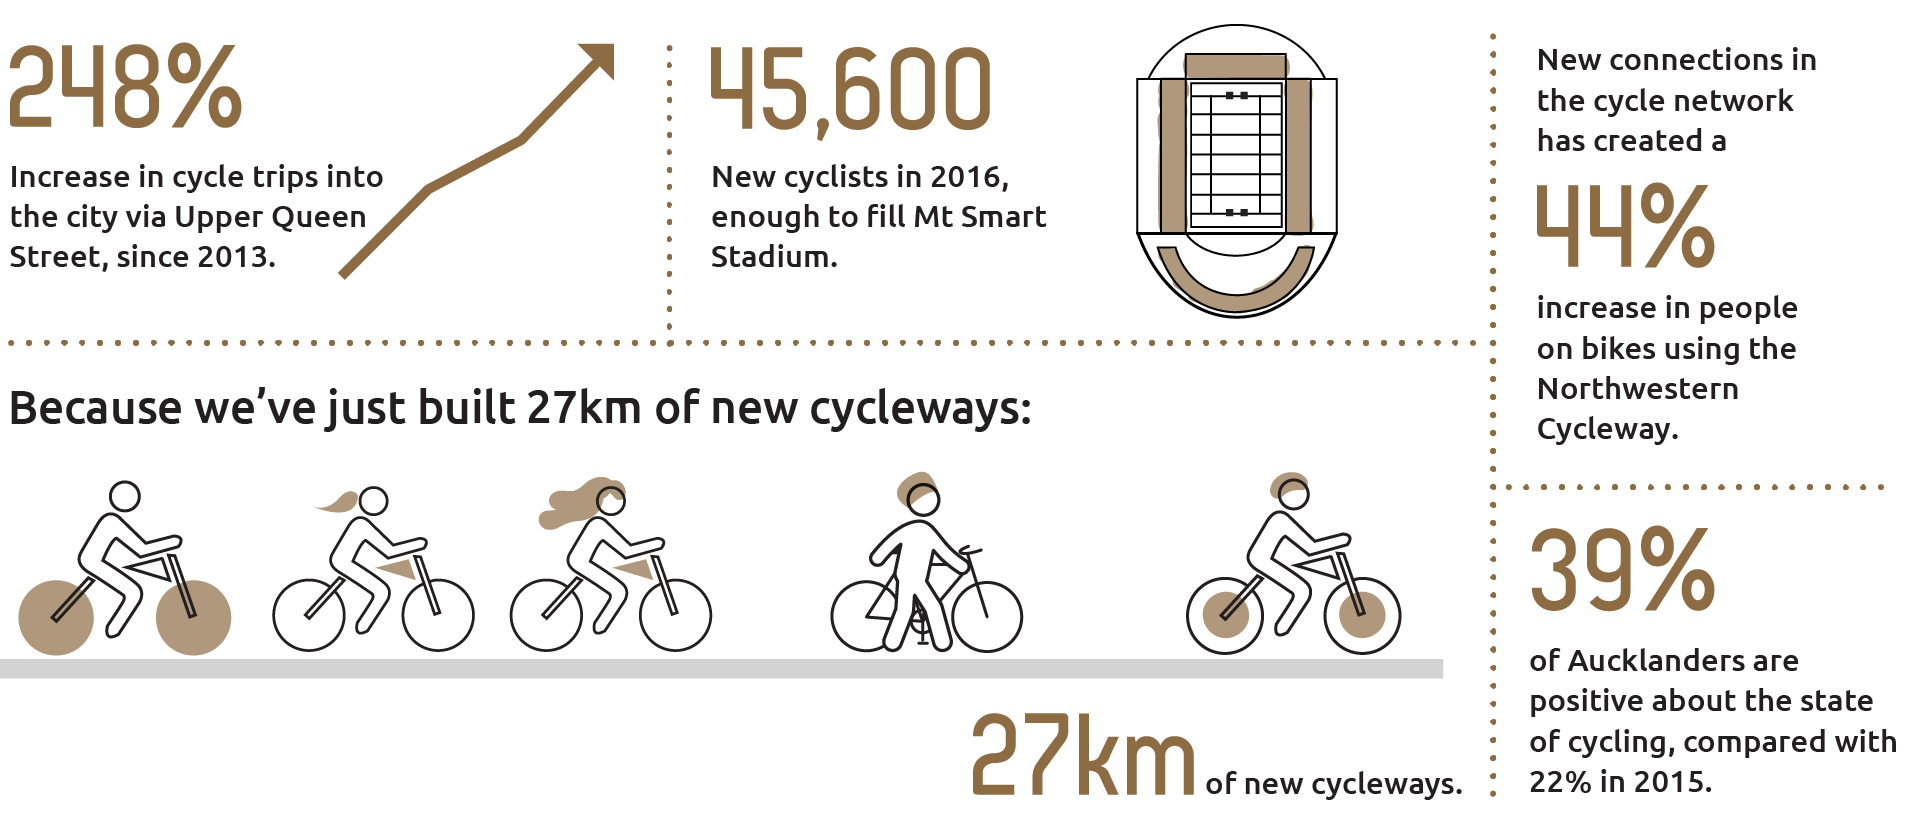 Grapic showing the results of the additional 27 kilometres of cycleways including the increase in cycle trips and new cyclists. Thirty nine per cent of Aucklanders are positive about the state of cycling compared with 22 per cent in 2015.